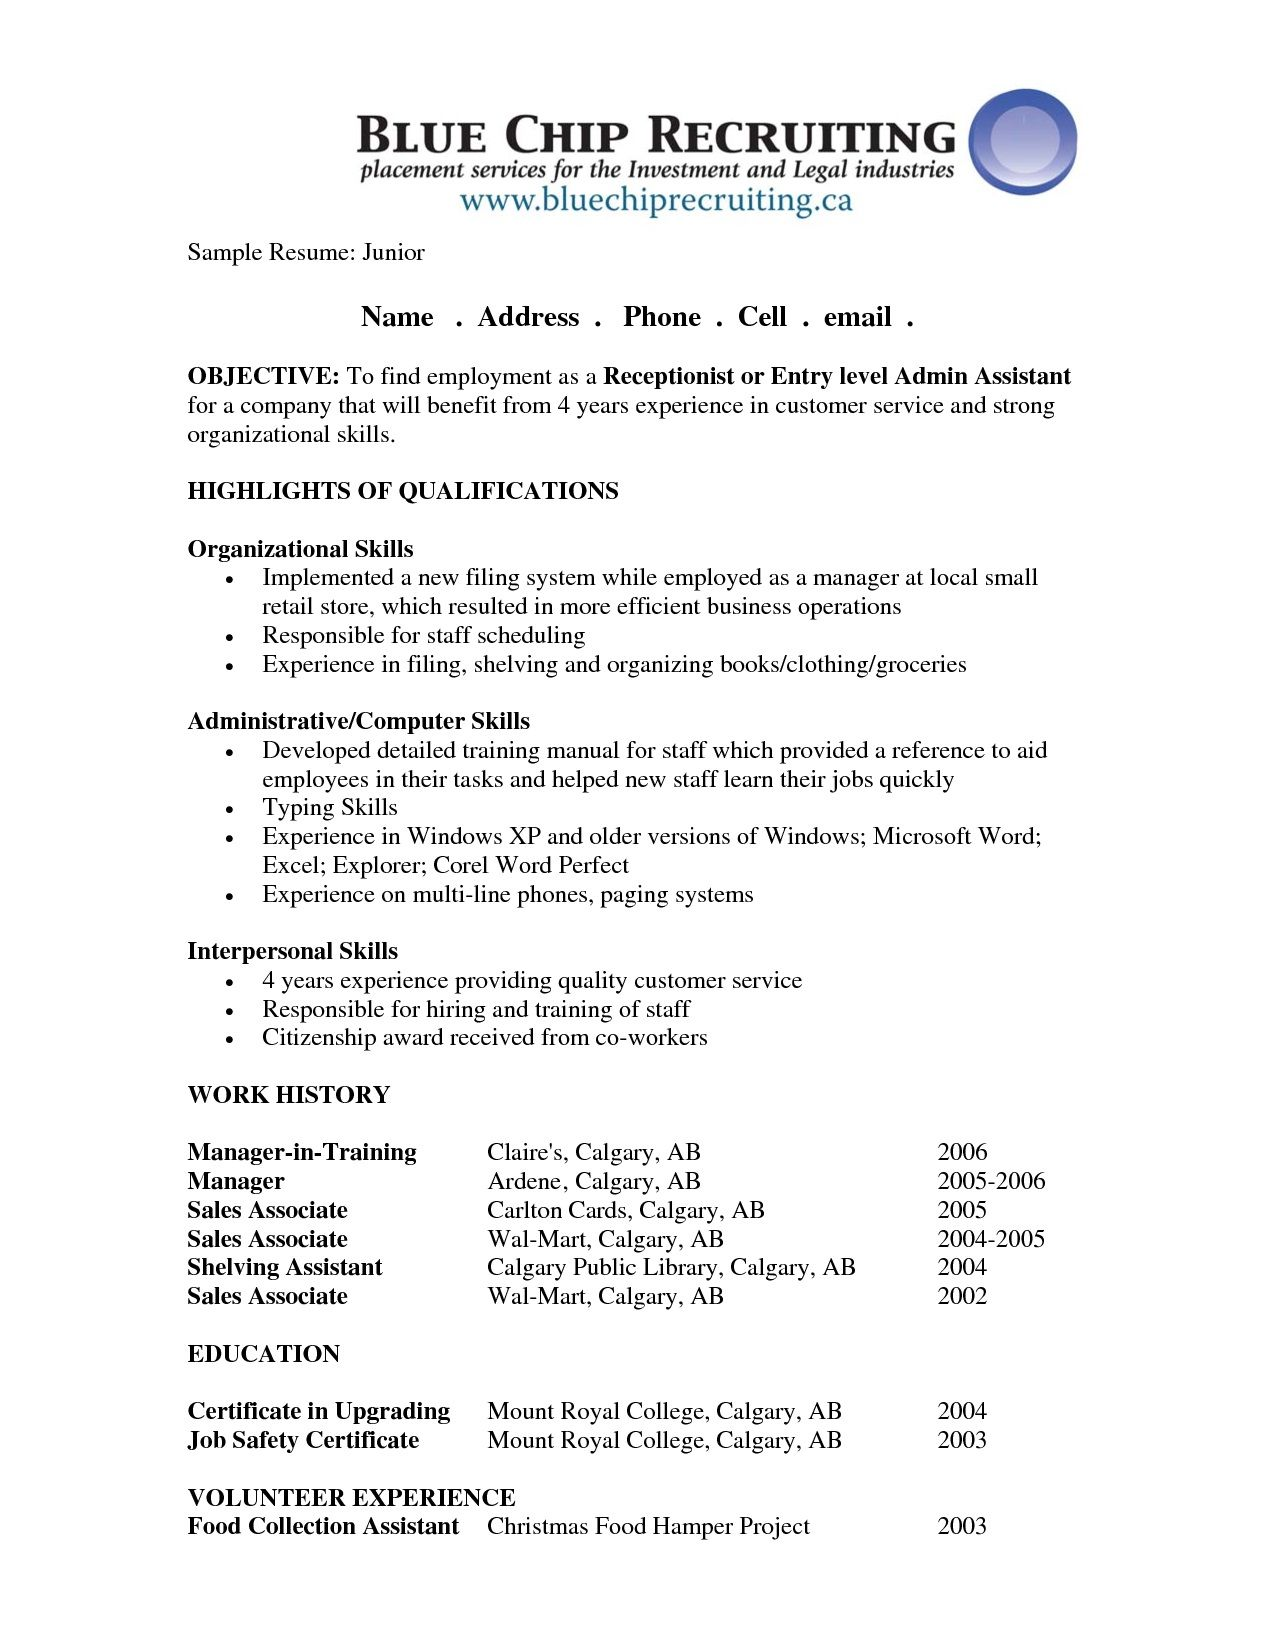 Receptionist Resume Objective Sample   Http://jobresumesample.com/453/ Receptionist  Receptionist Resume Skills